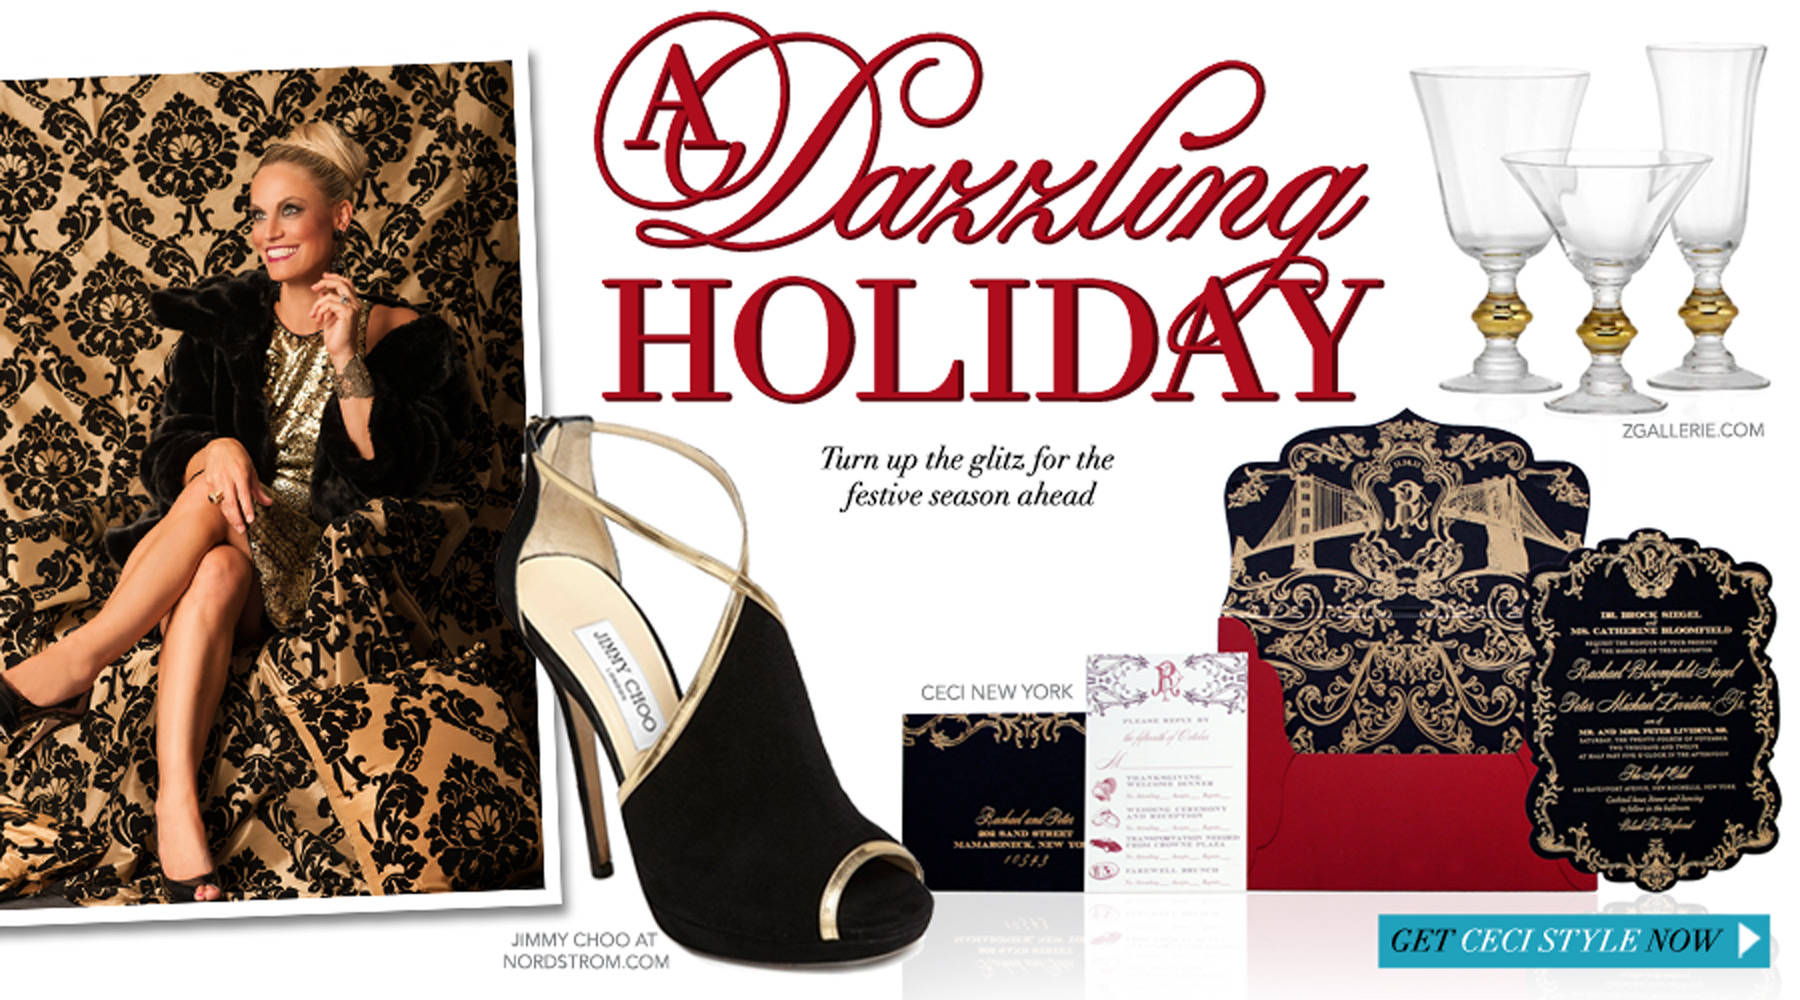 A Dazzling Holiday - Turn up the glitz for the festive season ahead